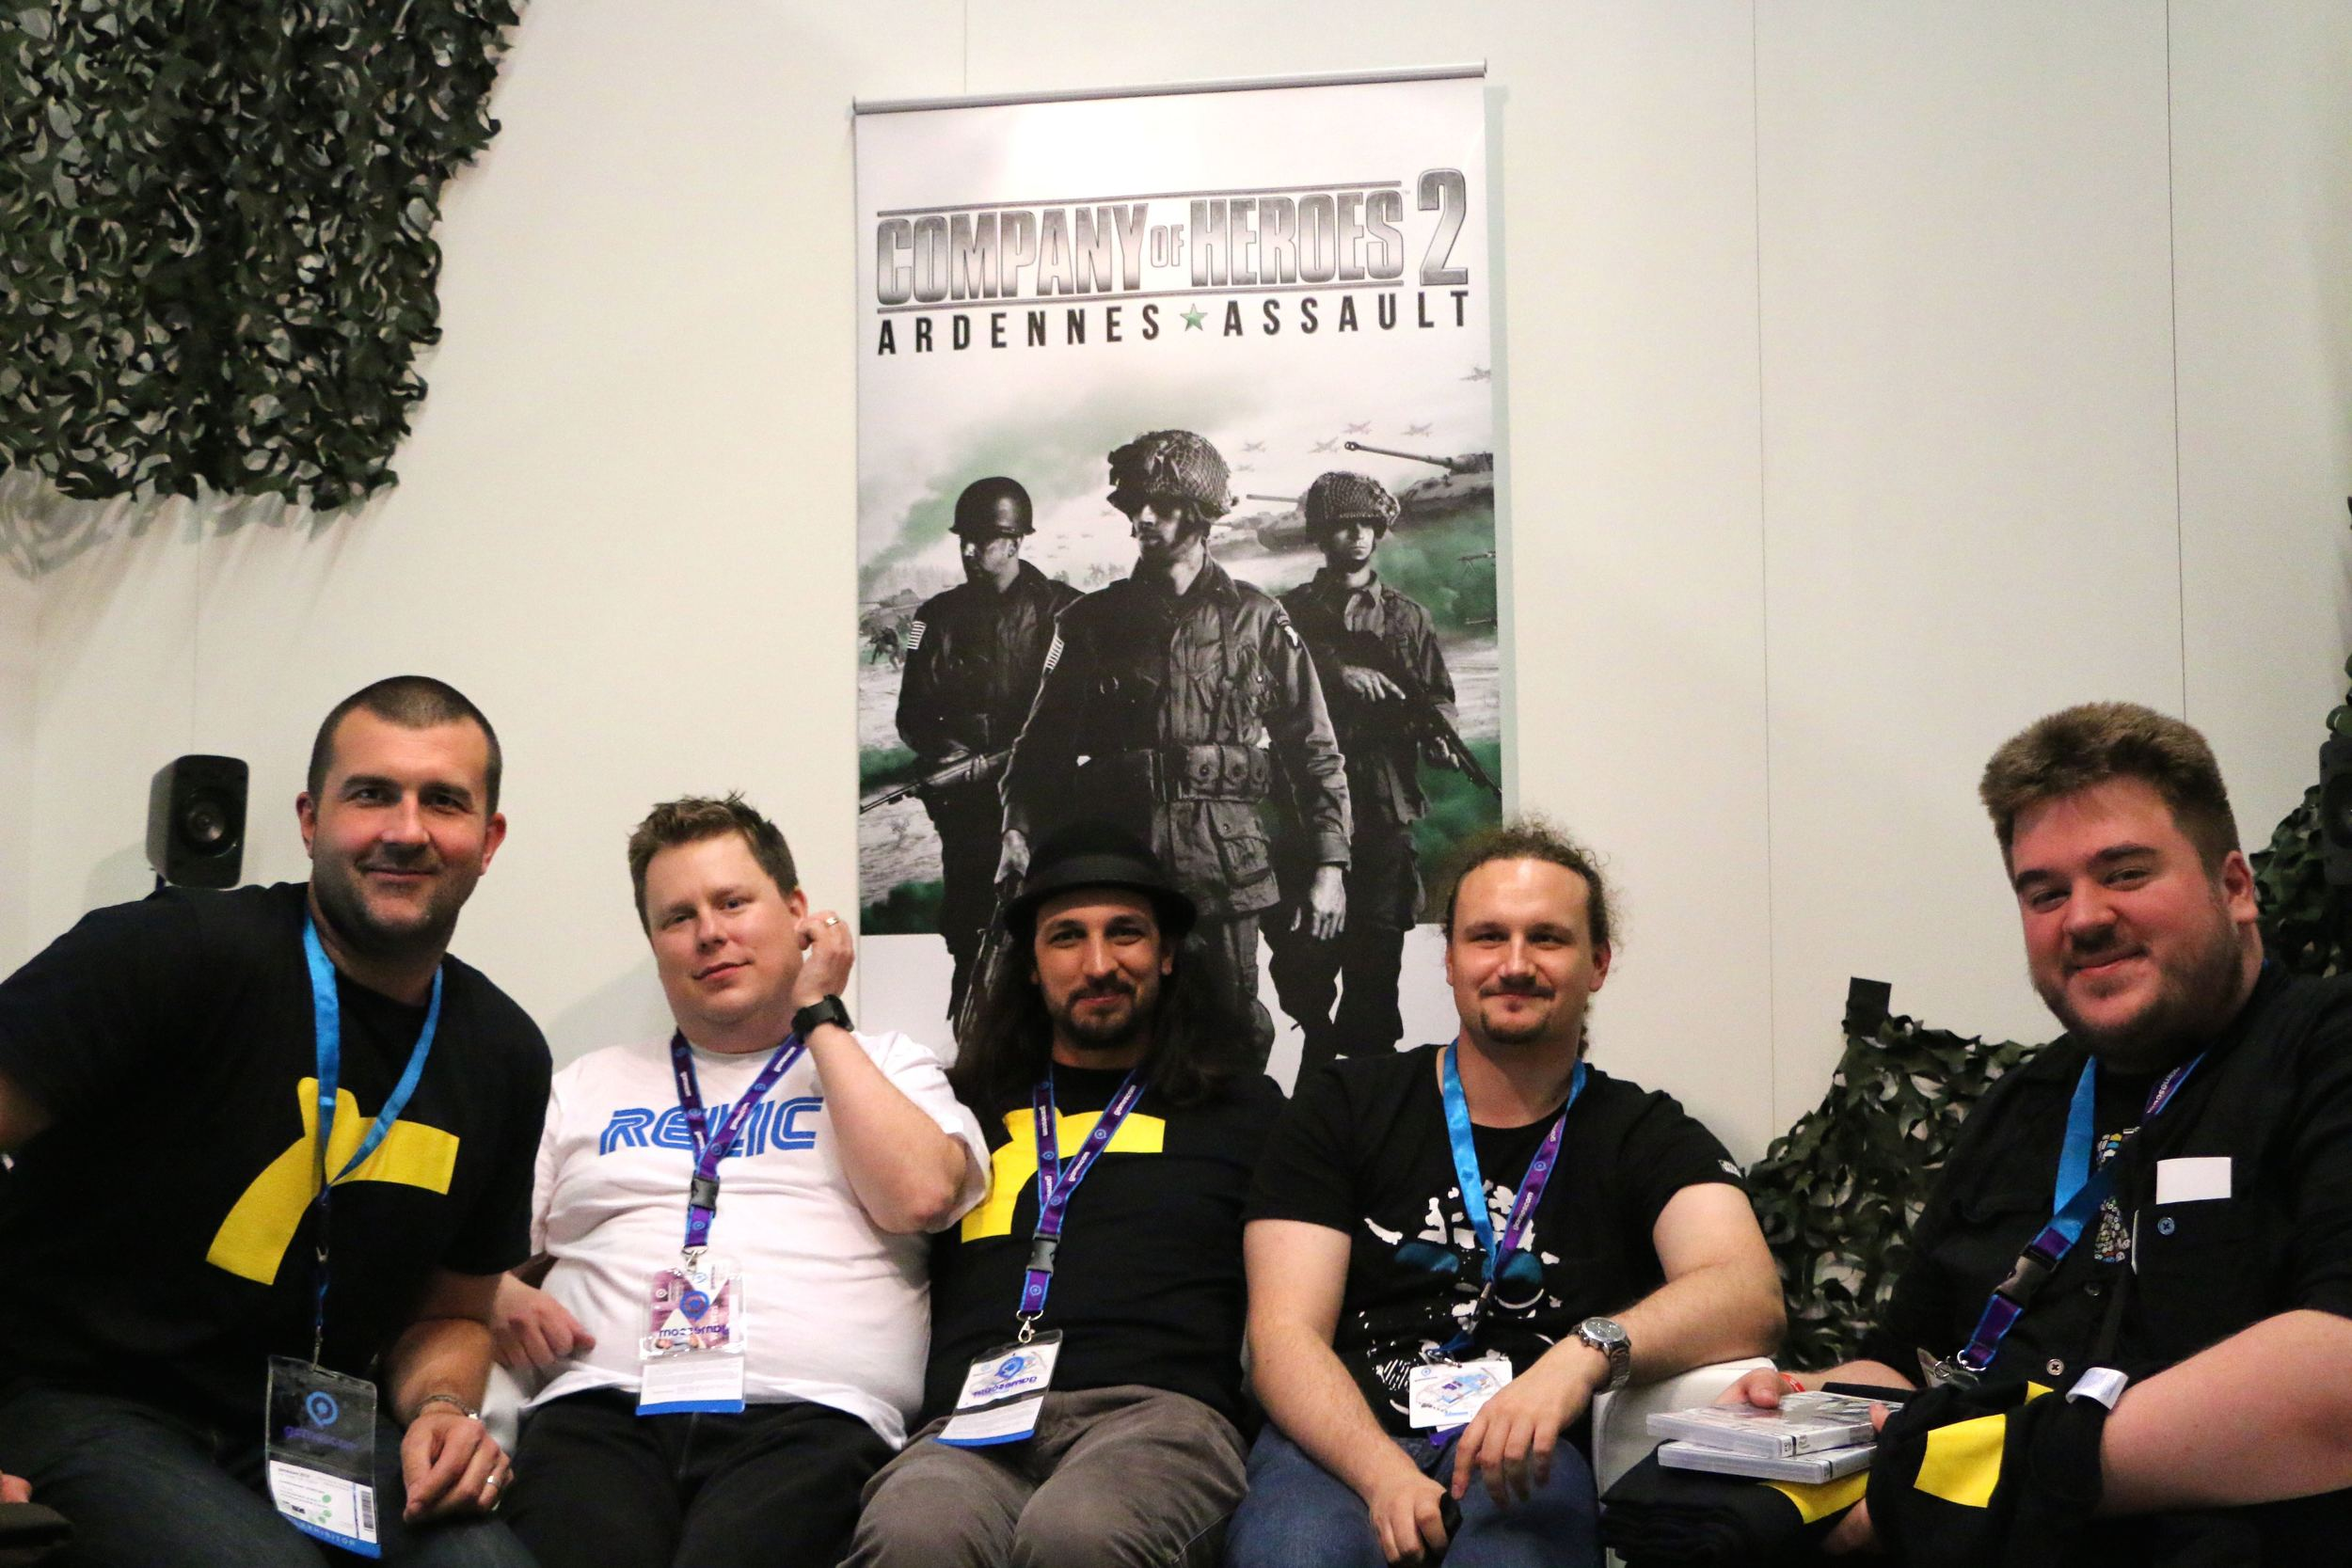 Me at Gamescom 2014 in Cologne this August. I'm second from the left, and heavier than I am now.